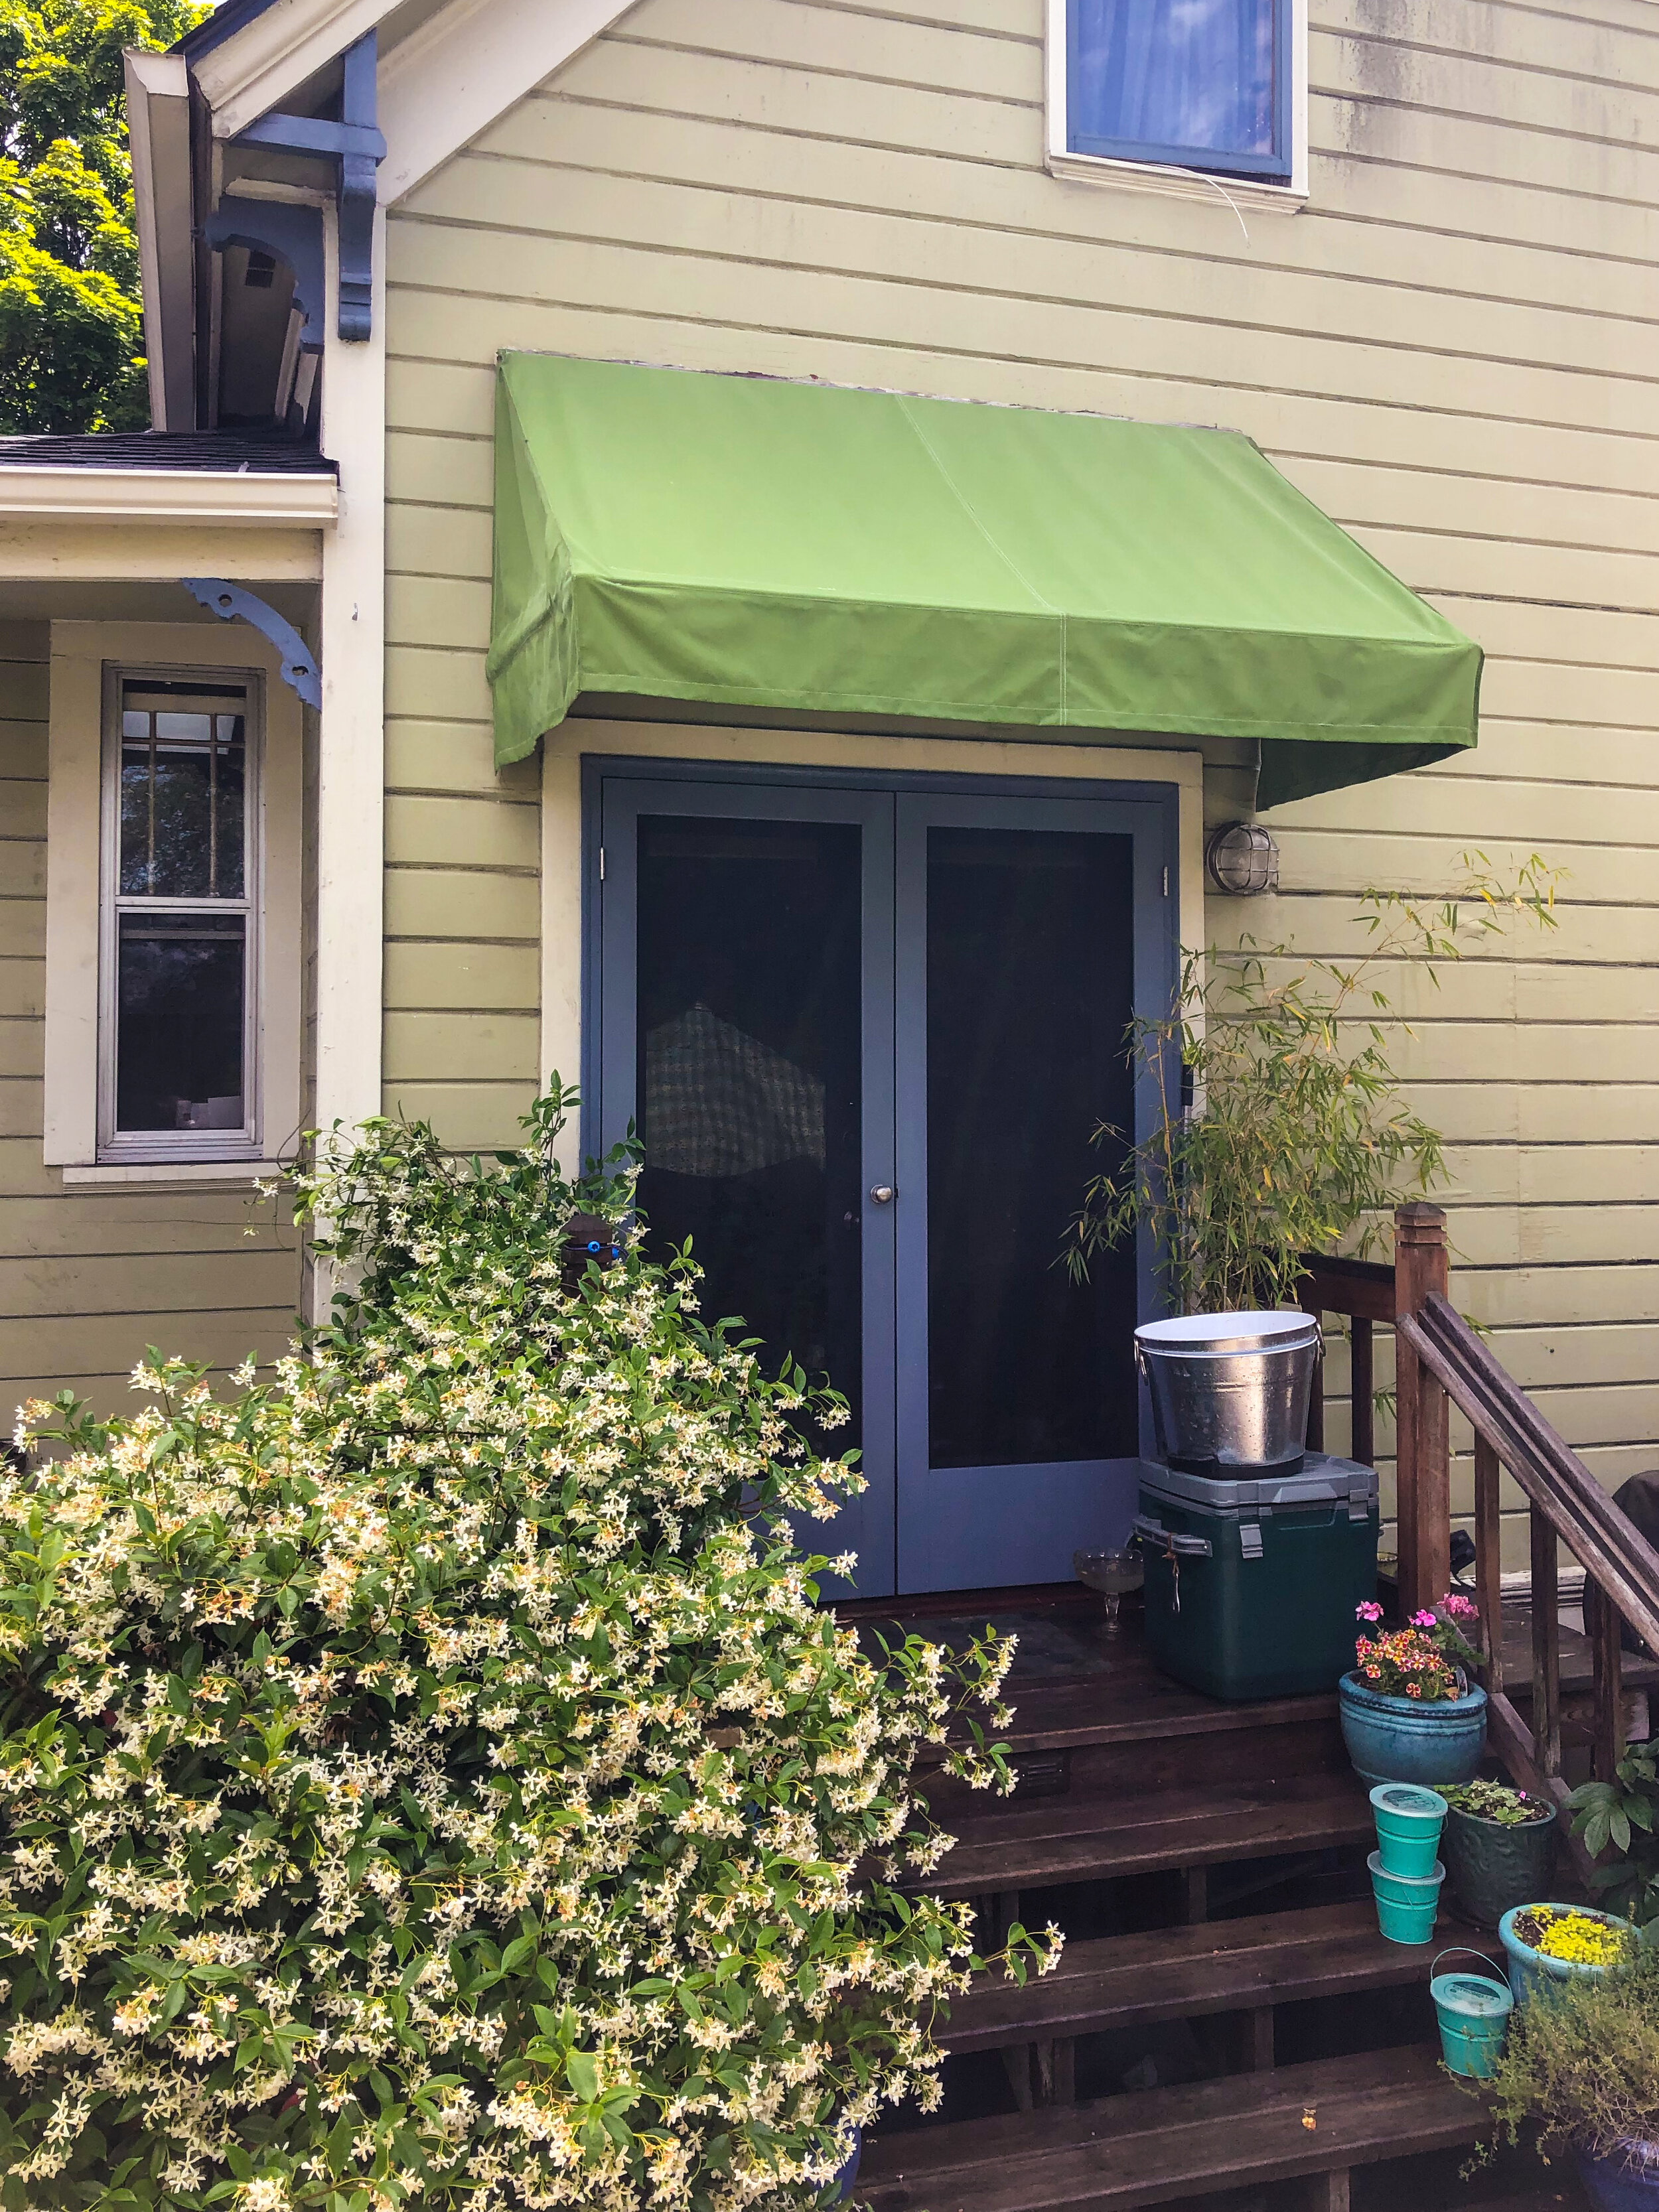 Staycation Home Improvement Ideas: Stationary Awnings ...